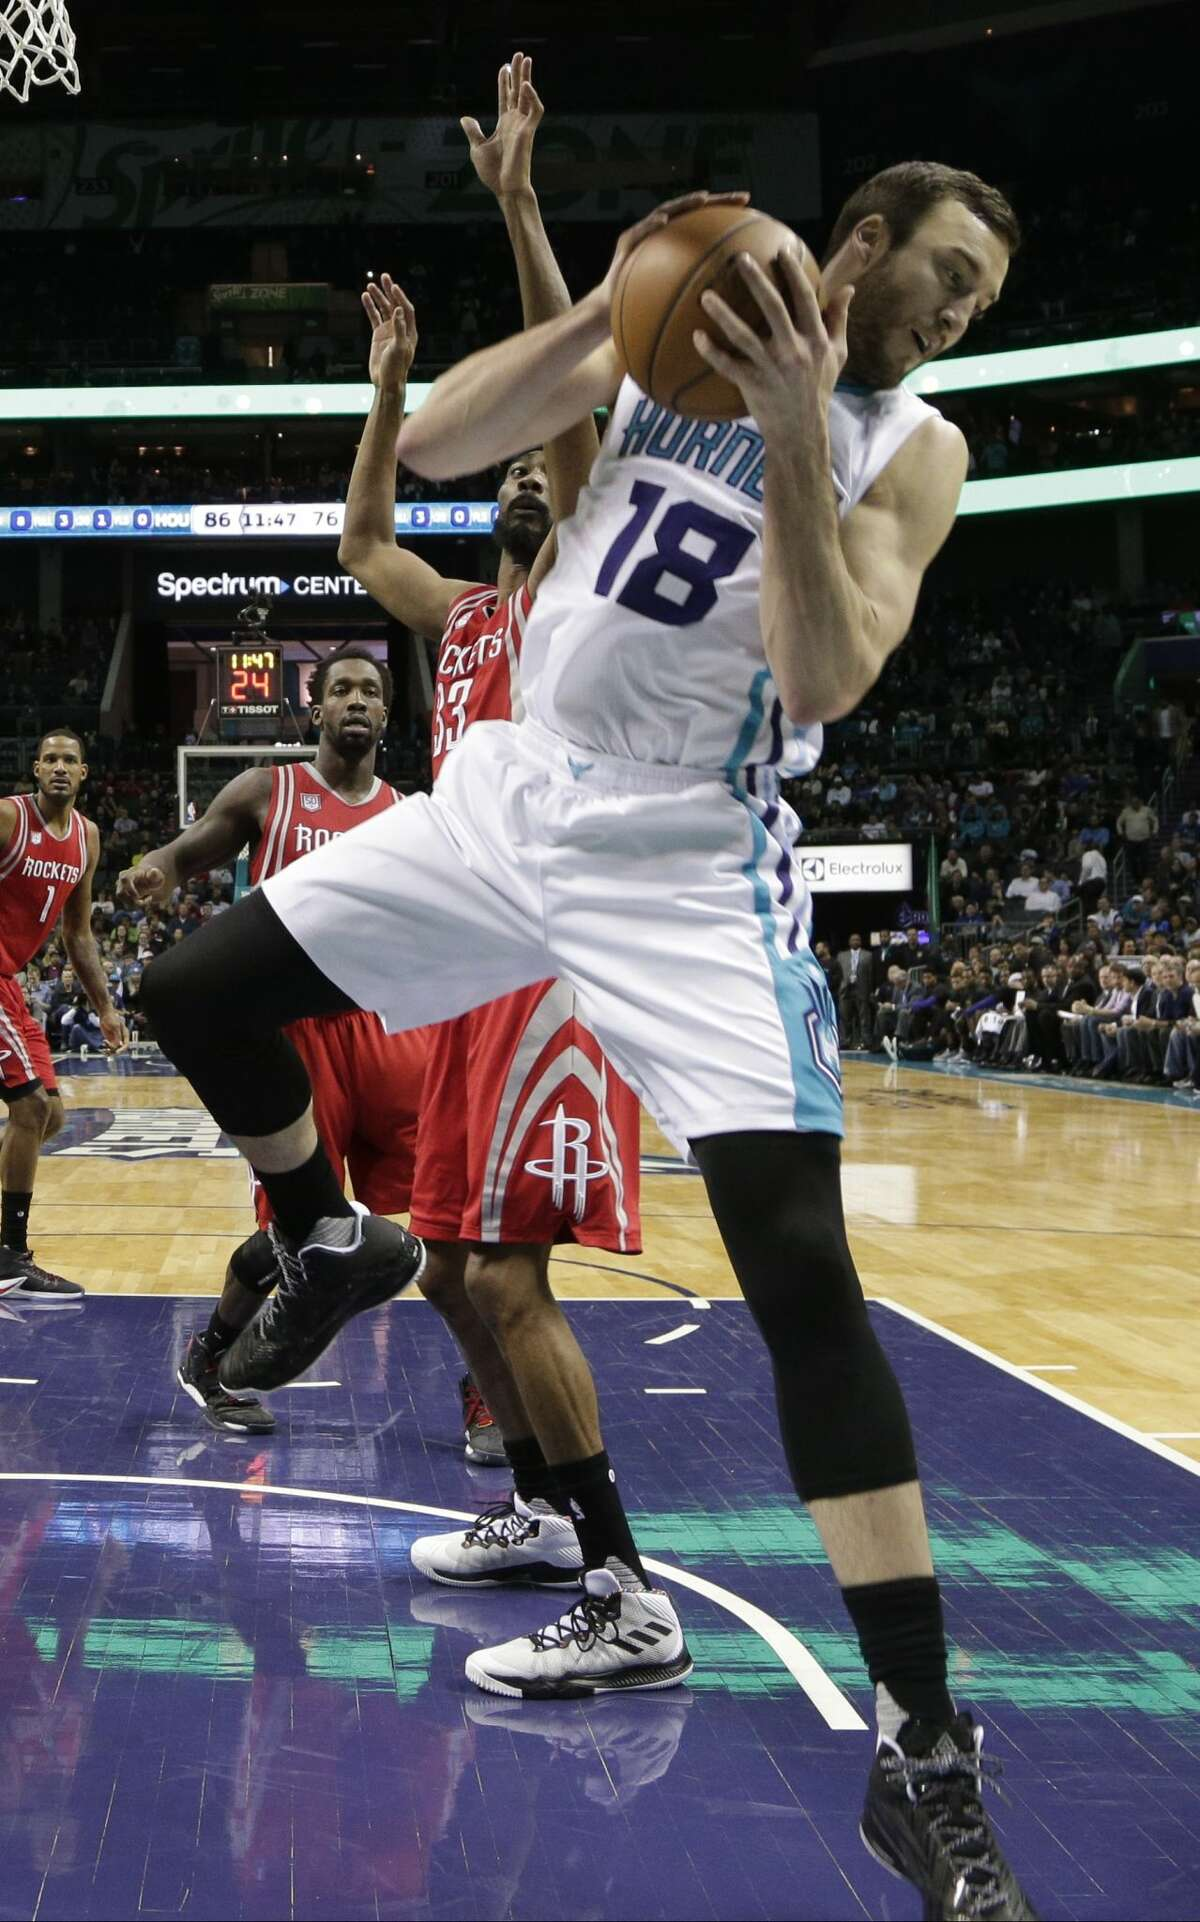 Charlotte Hornets' Miles Plumlee (18) grabs a rebound against the Houston Rockets in the second half of an NBA basketball game in Charlotte, N.C., Thursday, Feb. 9, 2017. The Rockets won 107-95. (AP Photo/Chuck Burton)